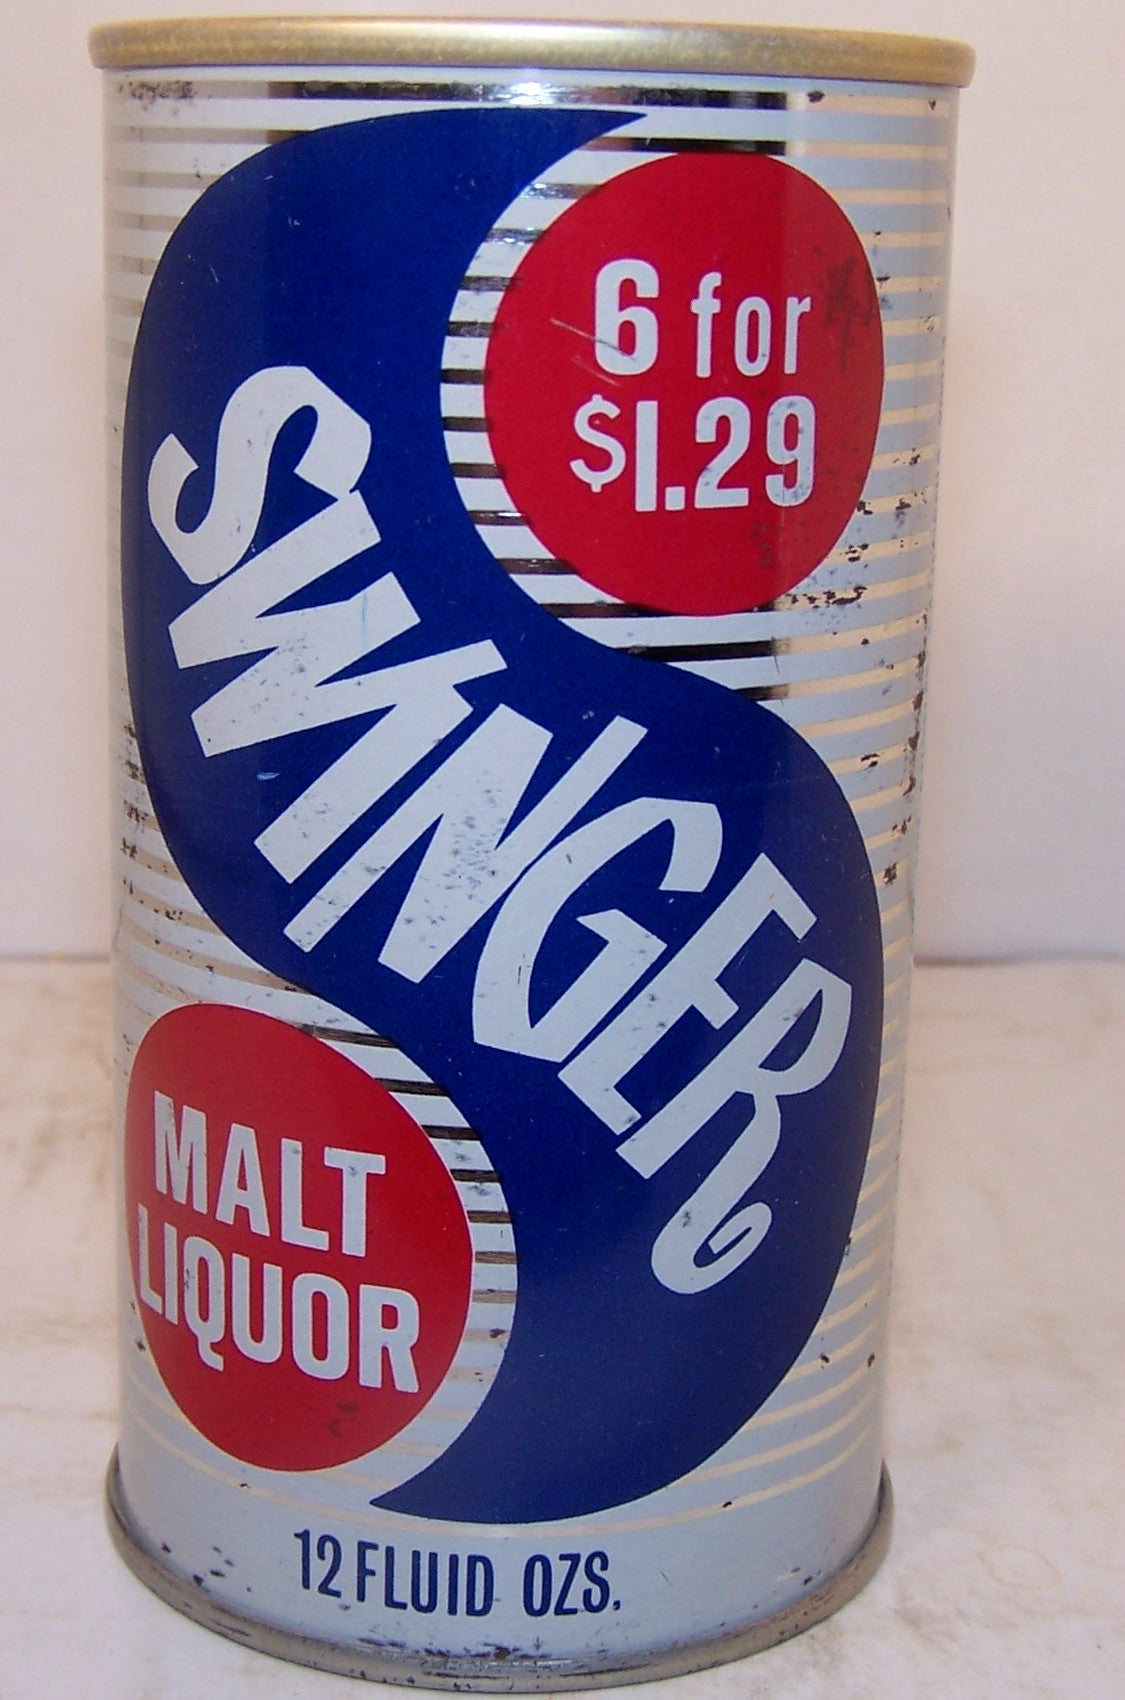 Swinger Malt Liquor, 6 for $1.29, USBC II 129-28 grade 1- Sold 2/12/15